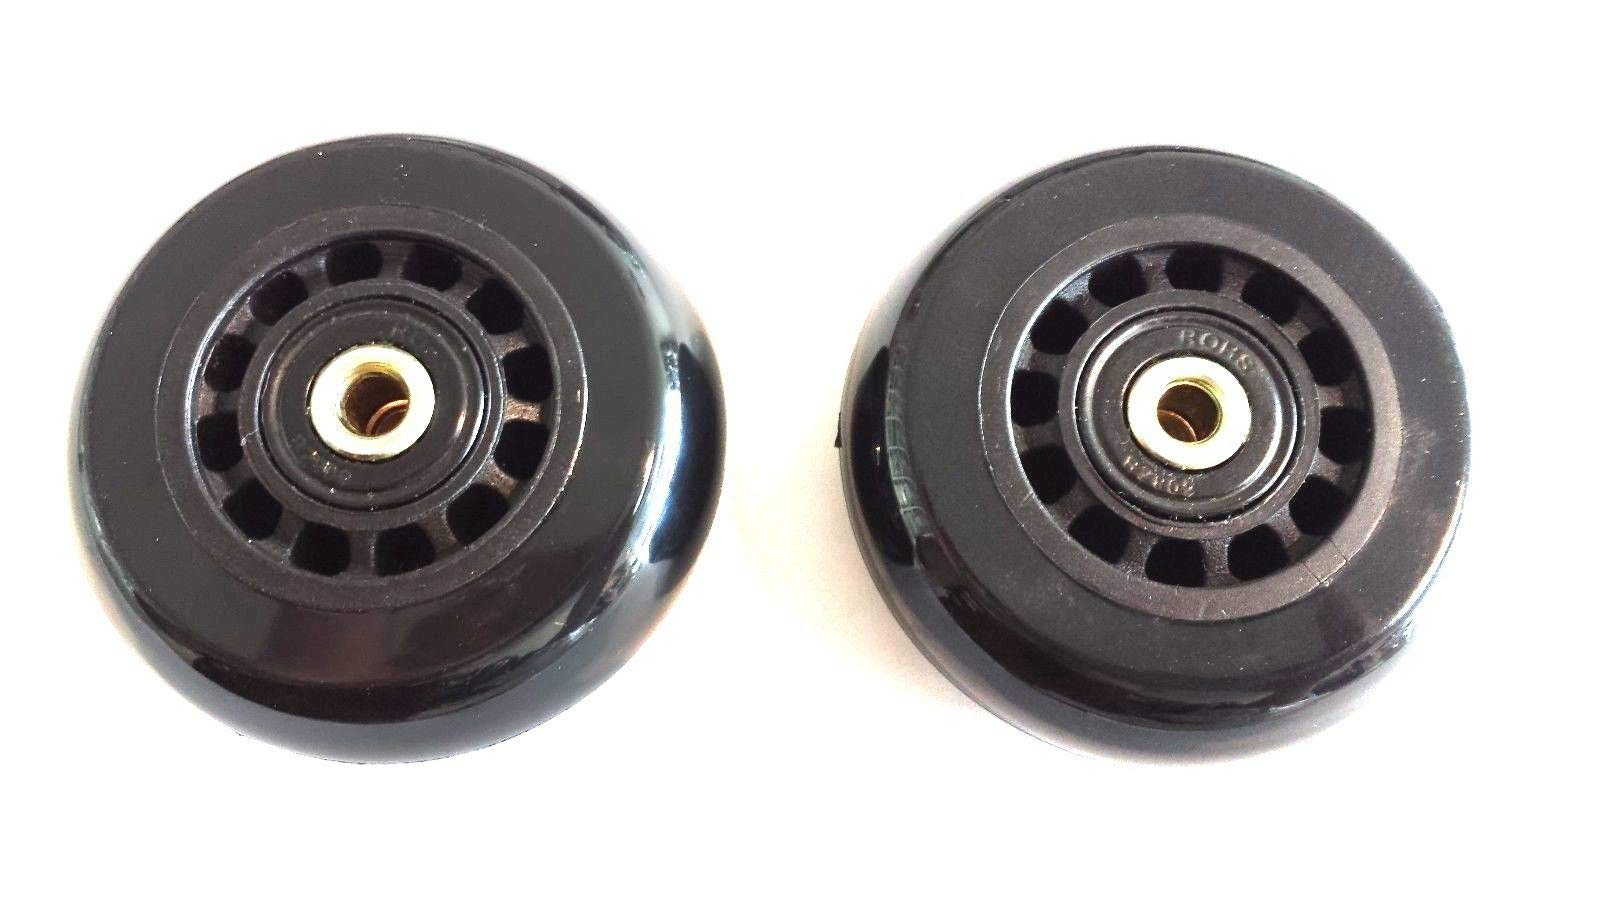 TNPSHOP Replacement Hartmann Roller Wheels, 2 Axles and 2 Wheels Included.